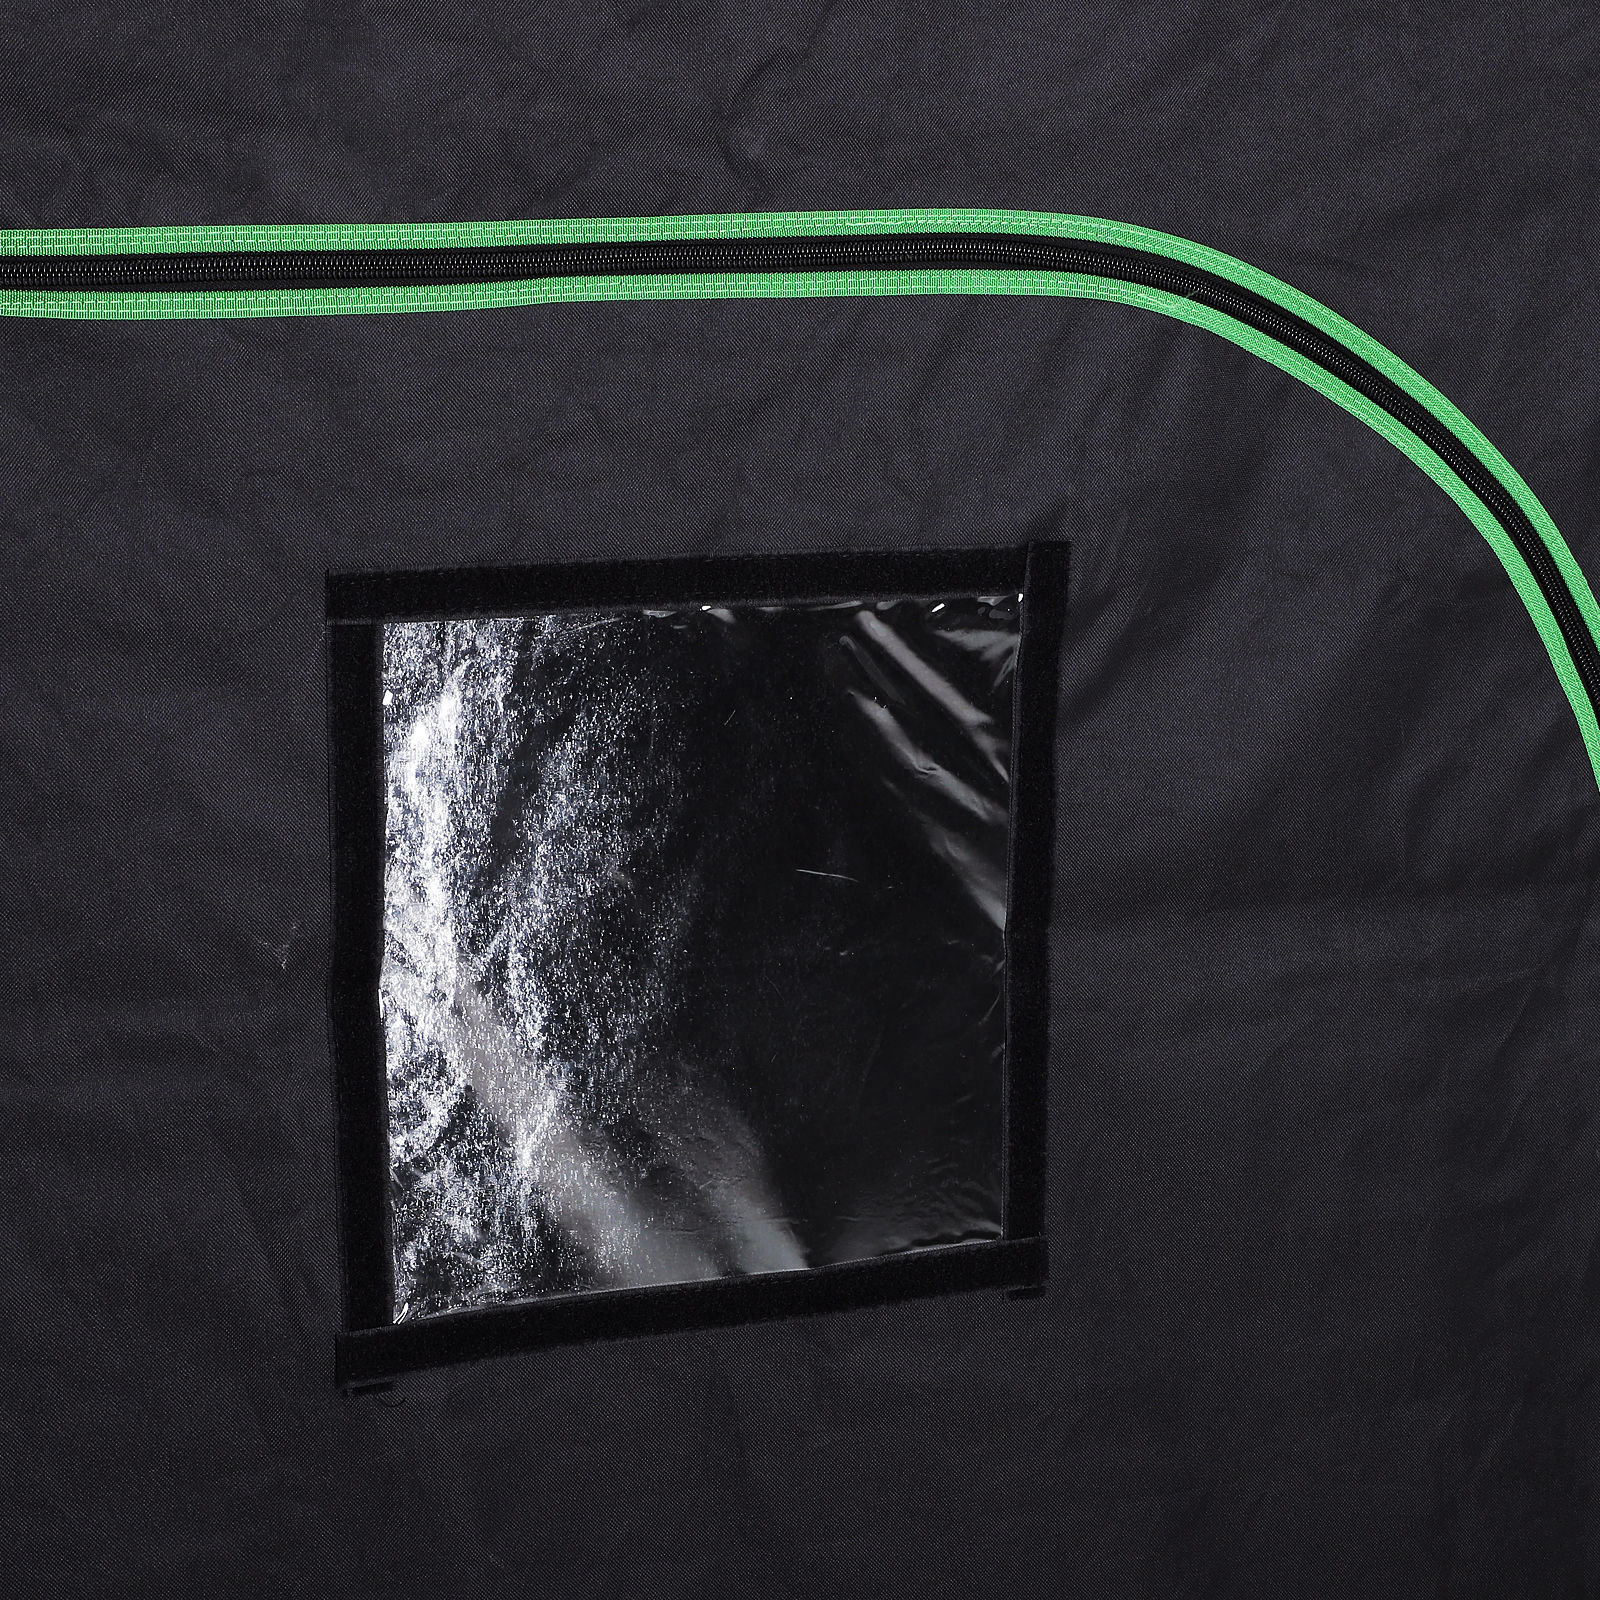 Hydroponic-Plant-Grow-Tent-Indoor-Obeservation-Window-Floor-Tray-Steel-Pole-600D thumbnail 10